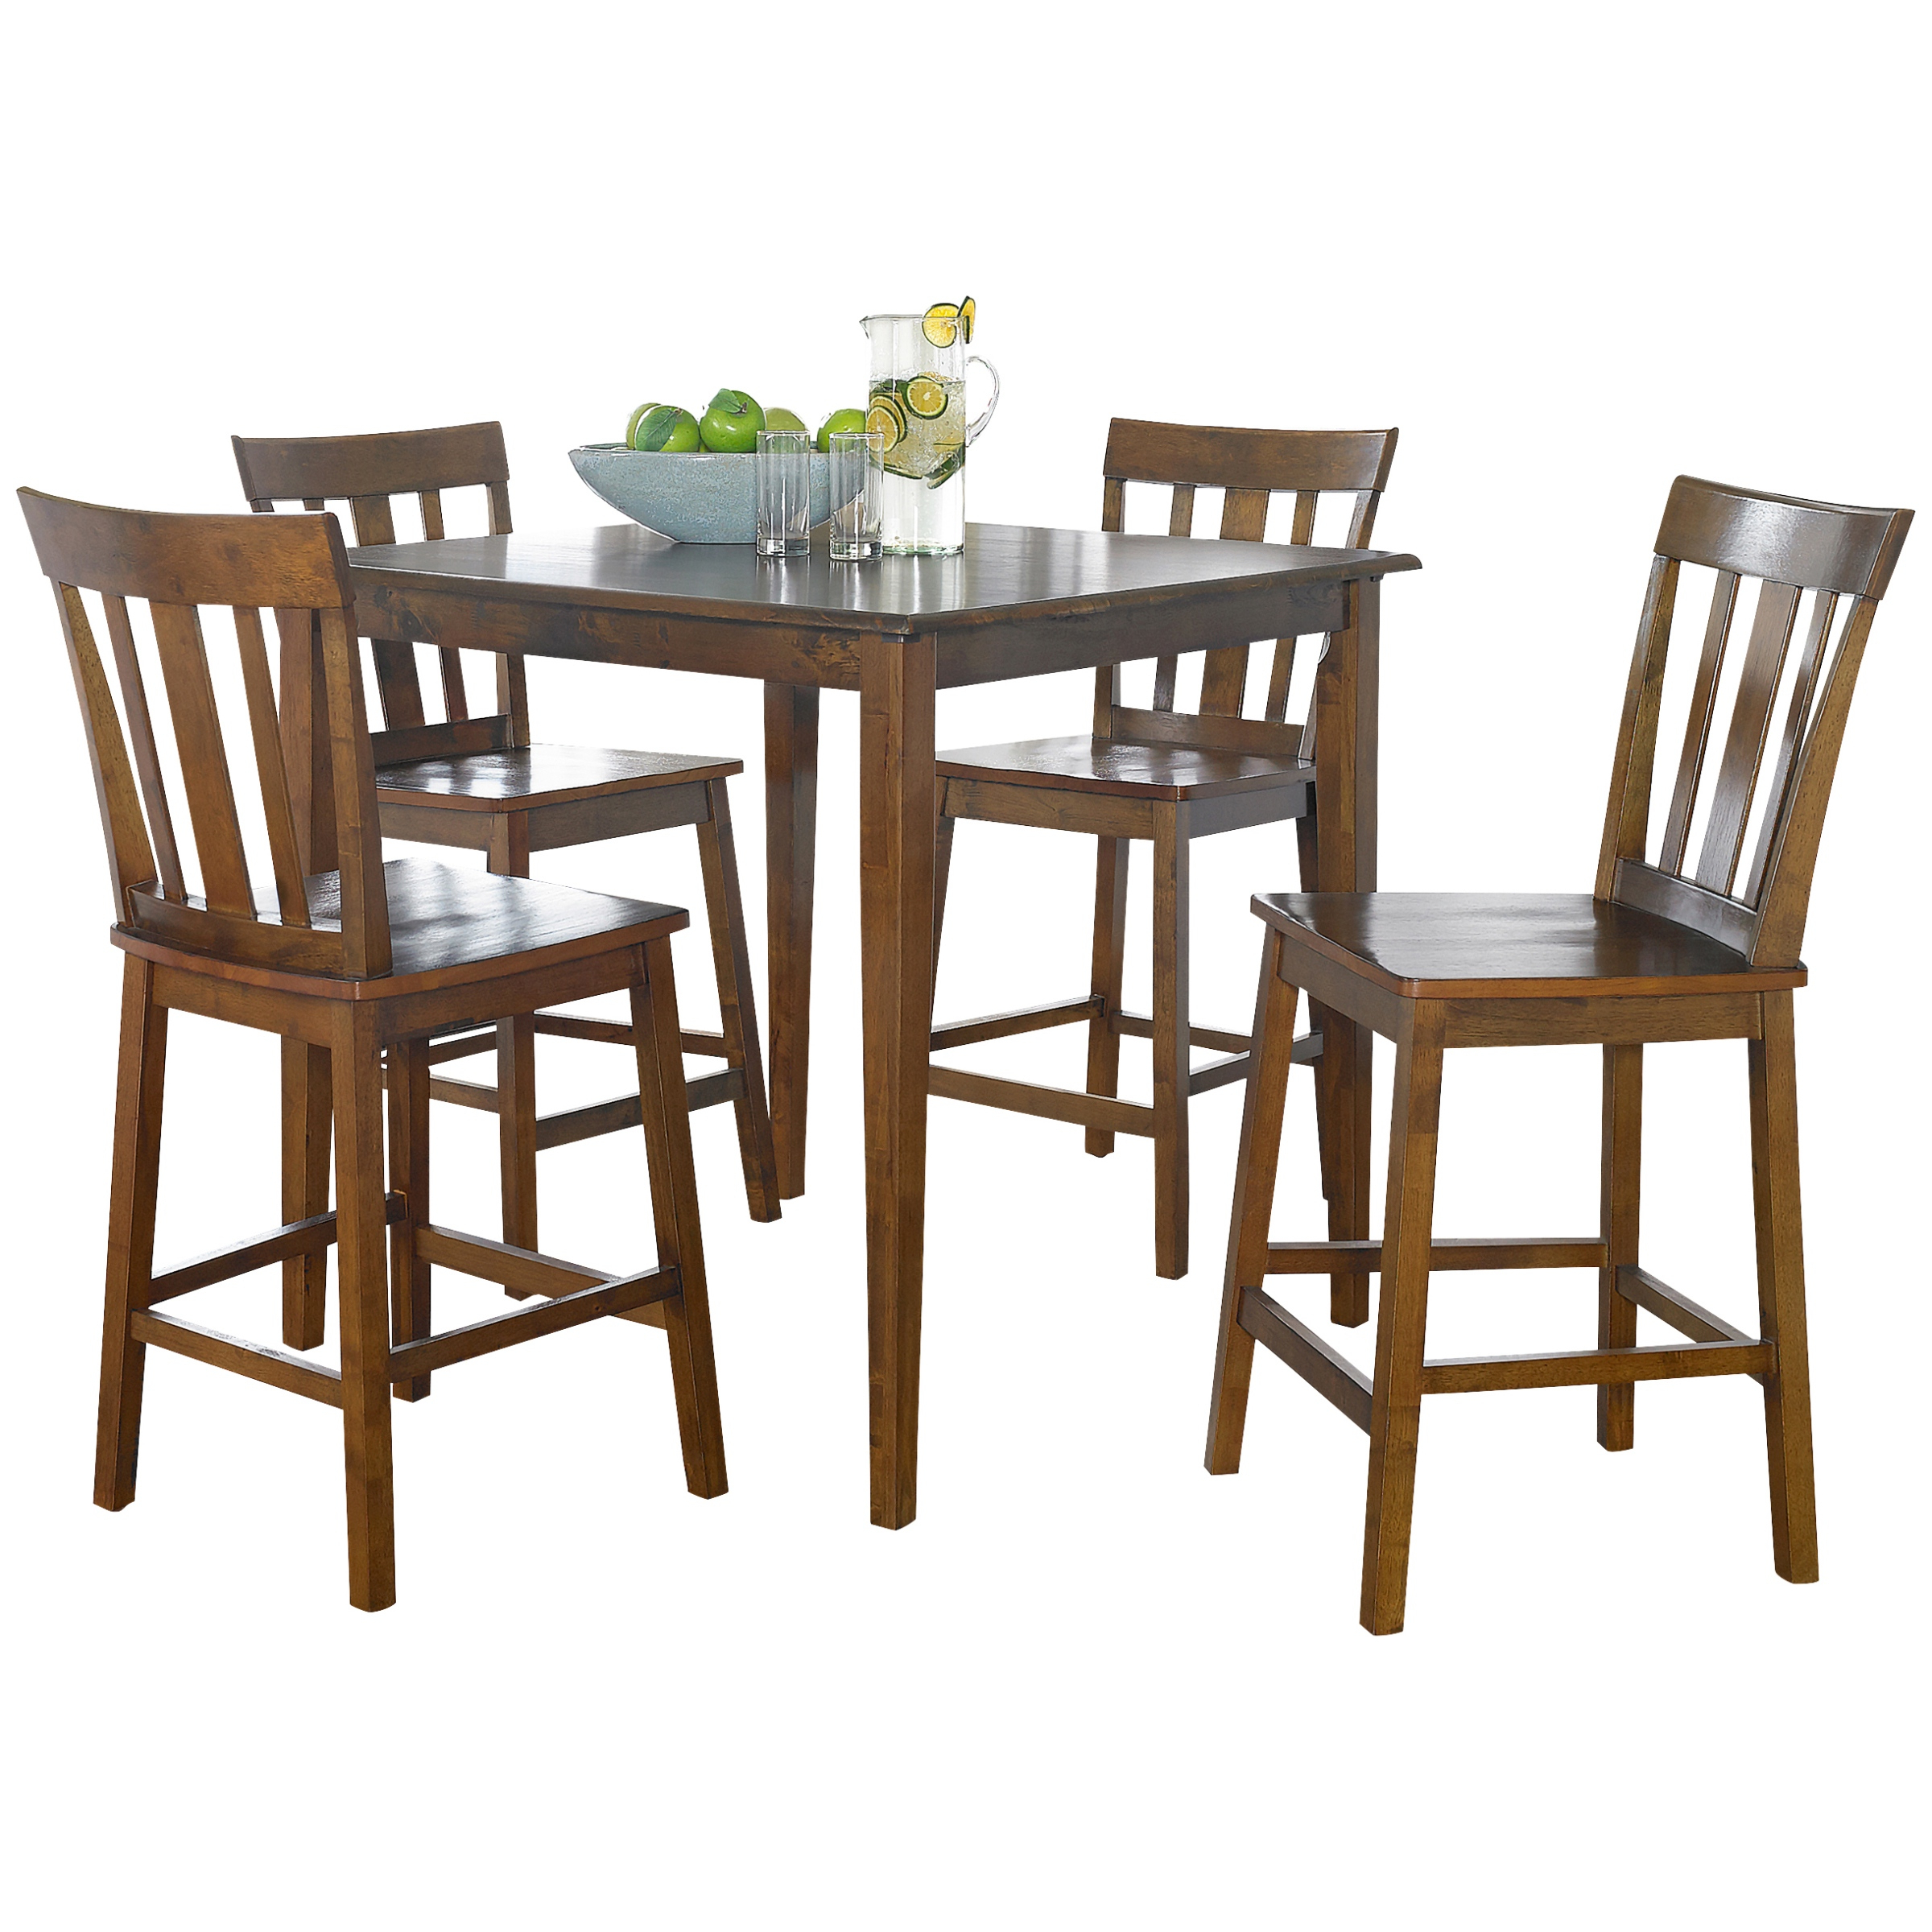 Mainstays 5 Piece Mission Counter Height Dining Set – Walmart With Regard To Recent Goodman 5 Piece Solid Wood Dining Sets (Set Of 5) (View 17 of 25)